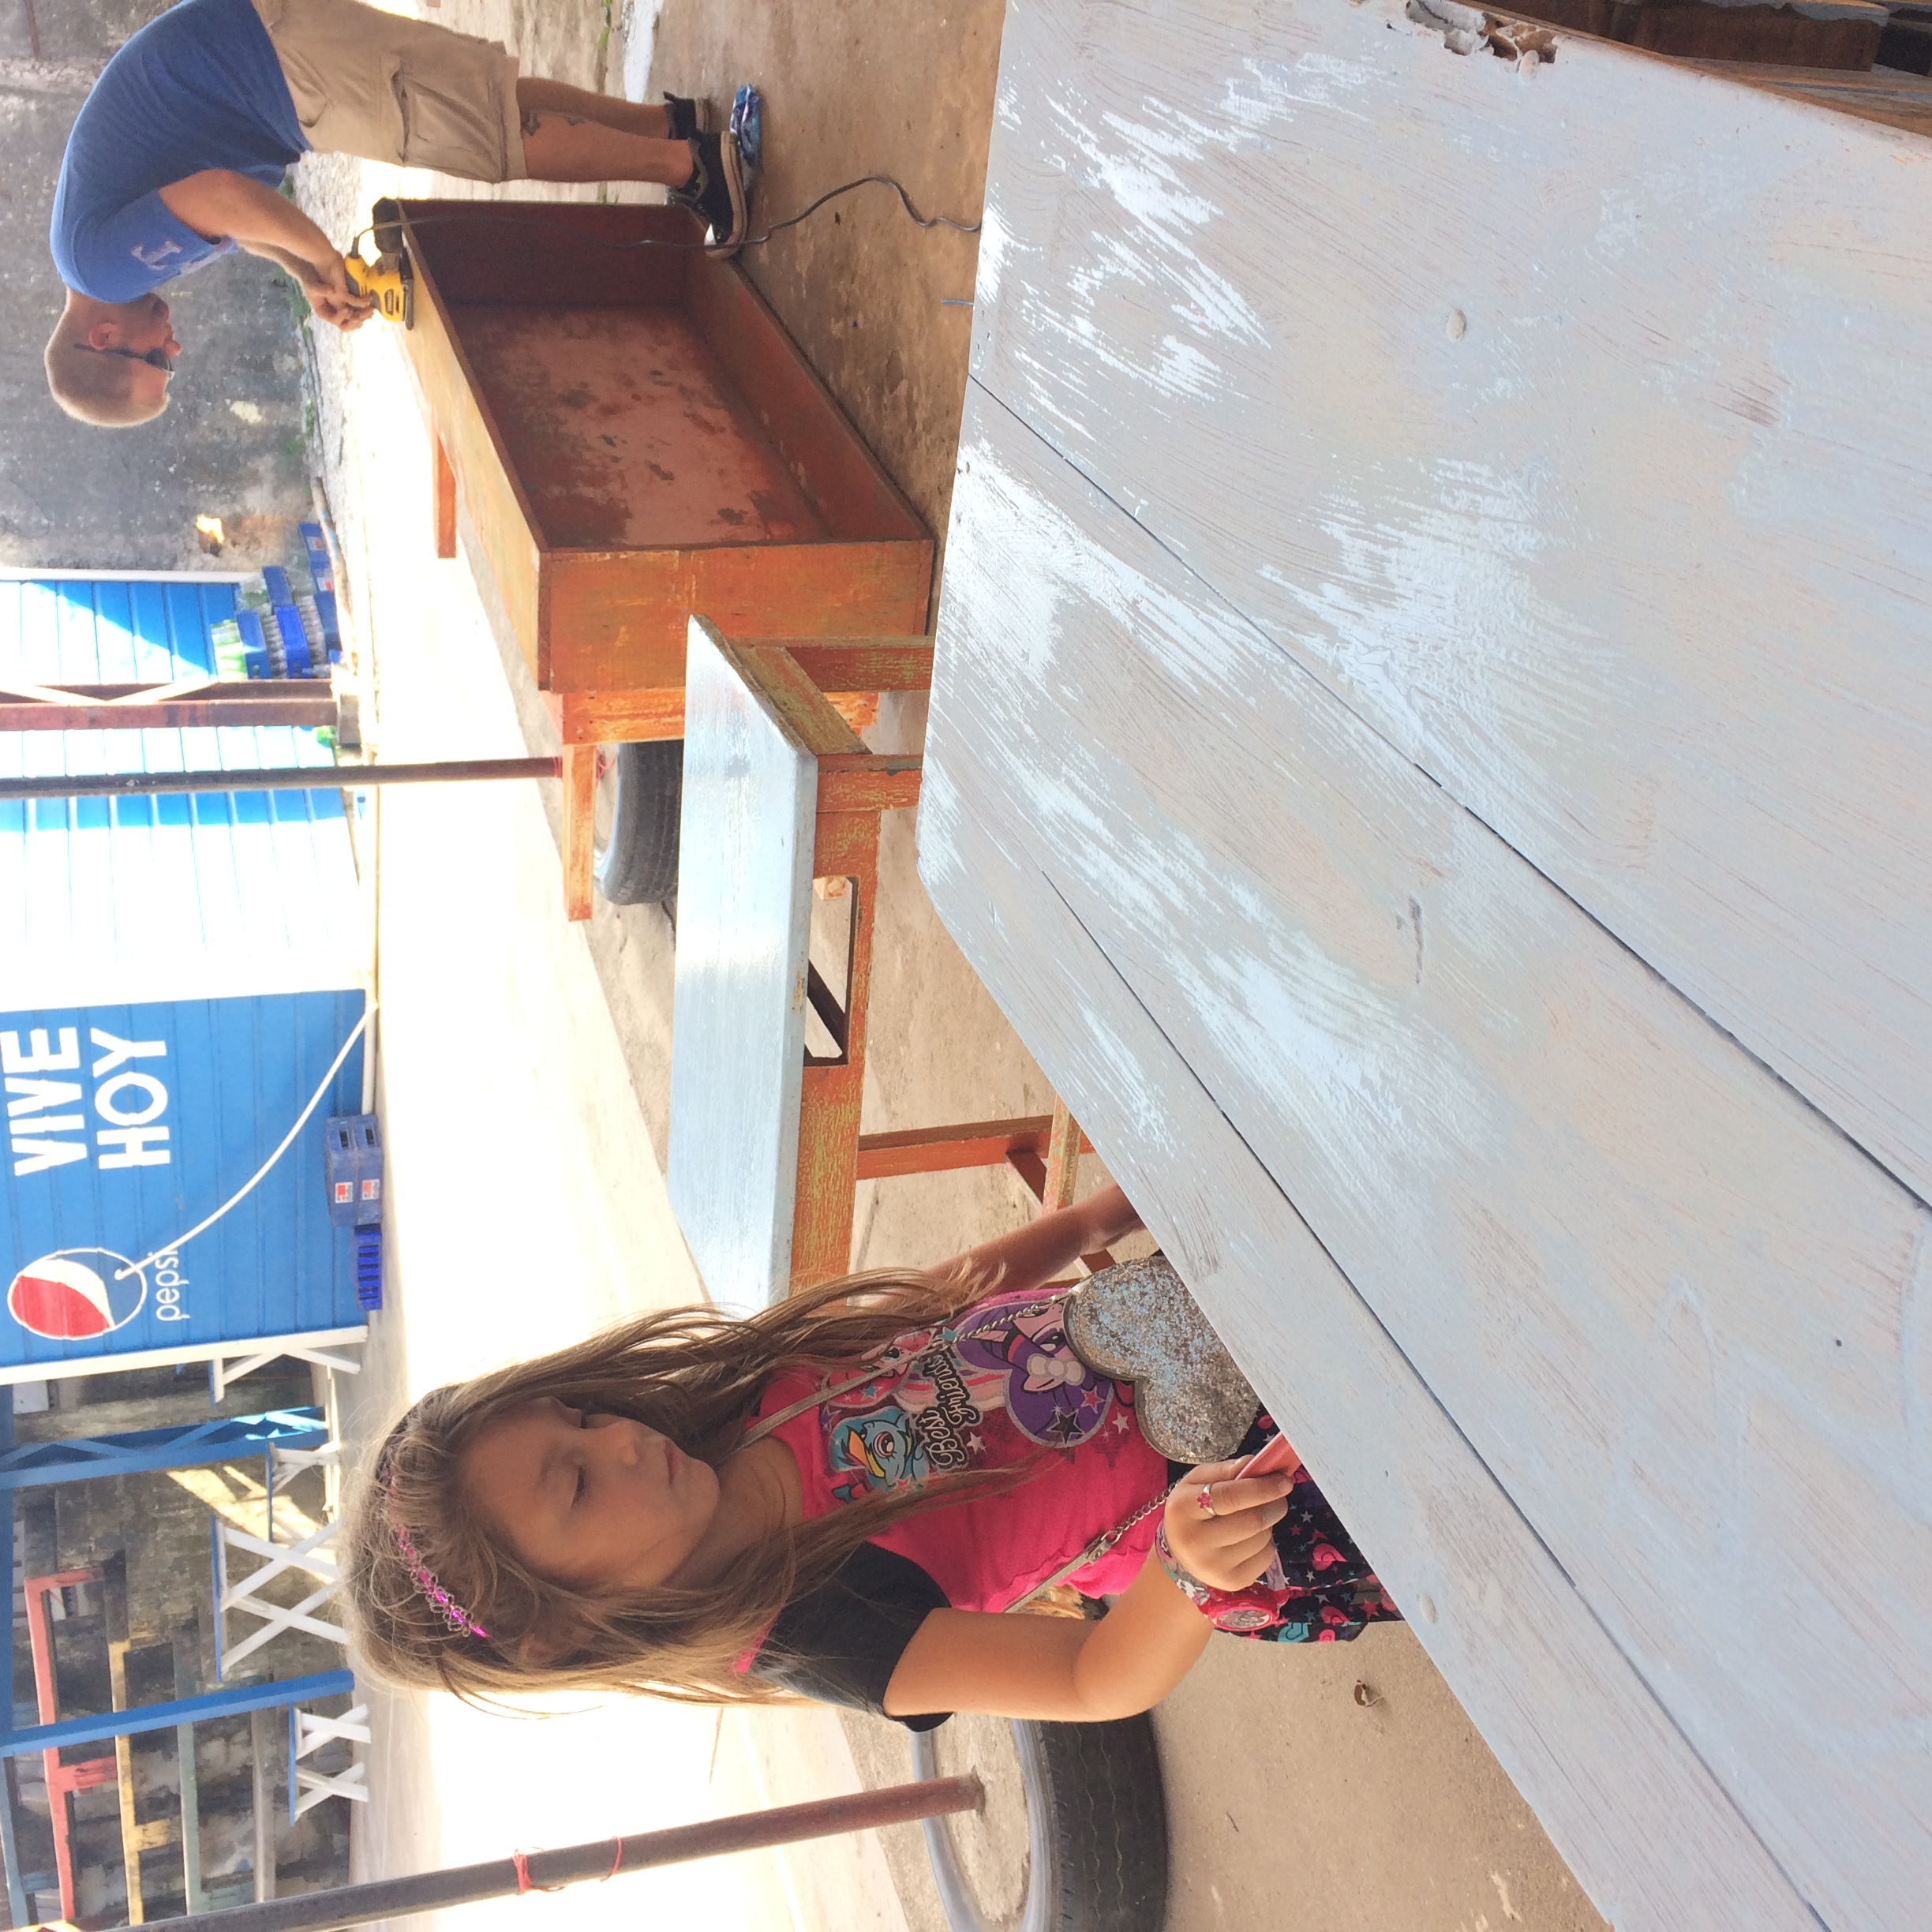 Saige Mendoza (Foreground) helps refinish a desk for the classrooms at DINAF in La Ceiba Honduras